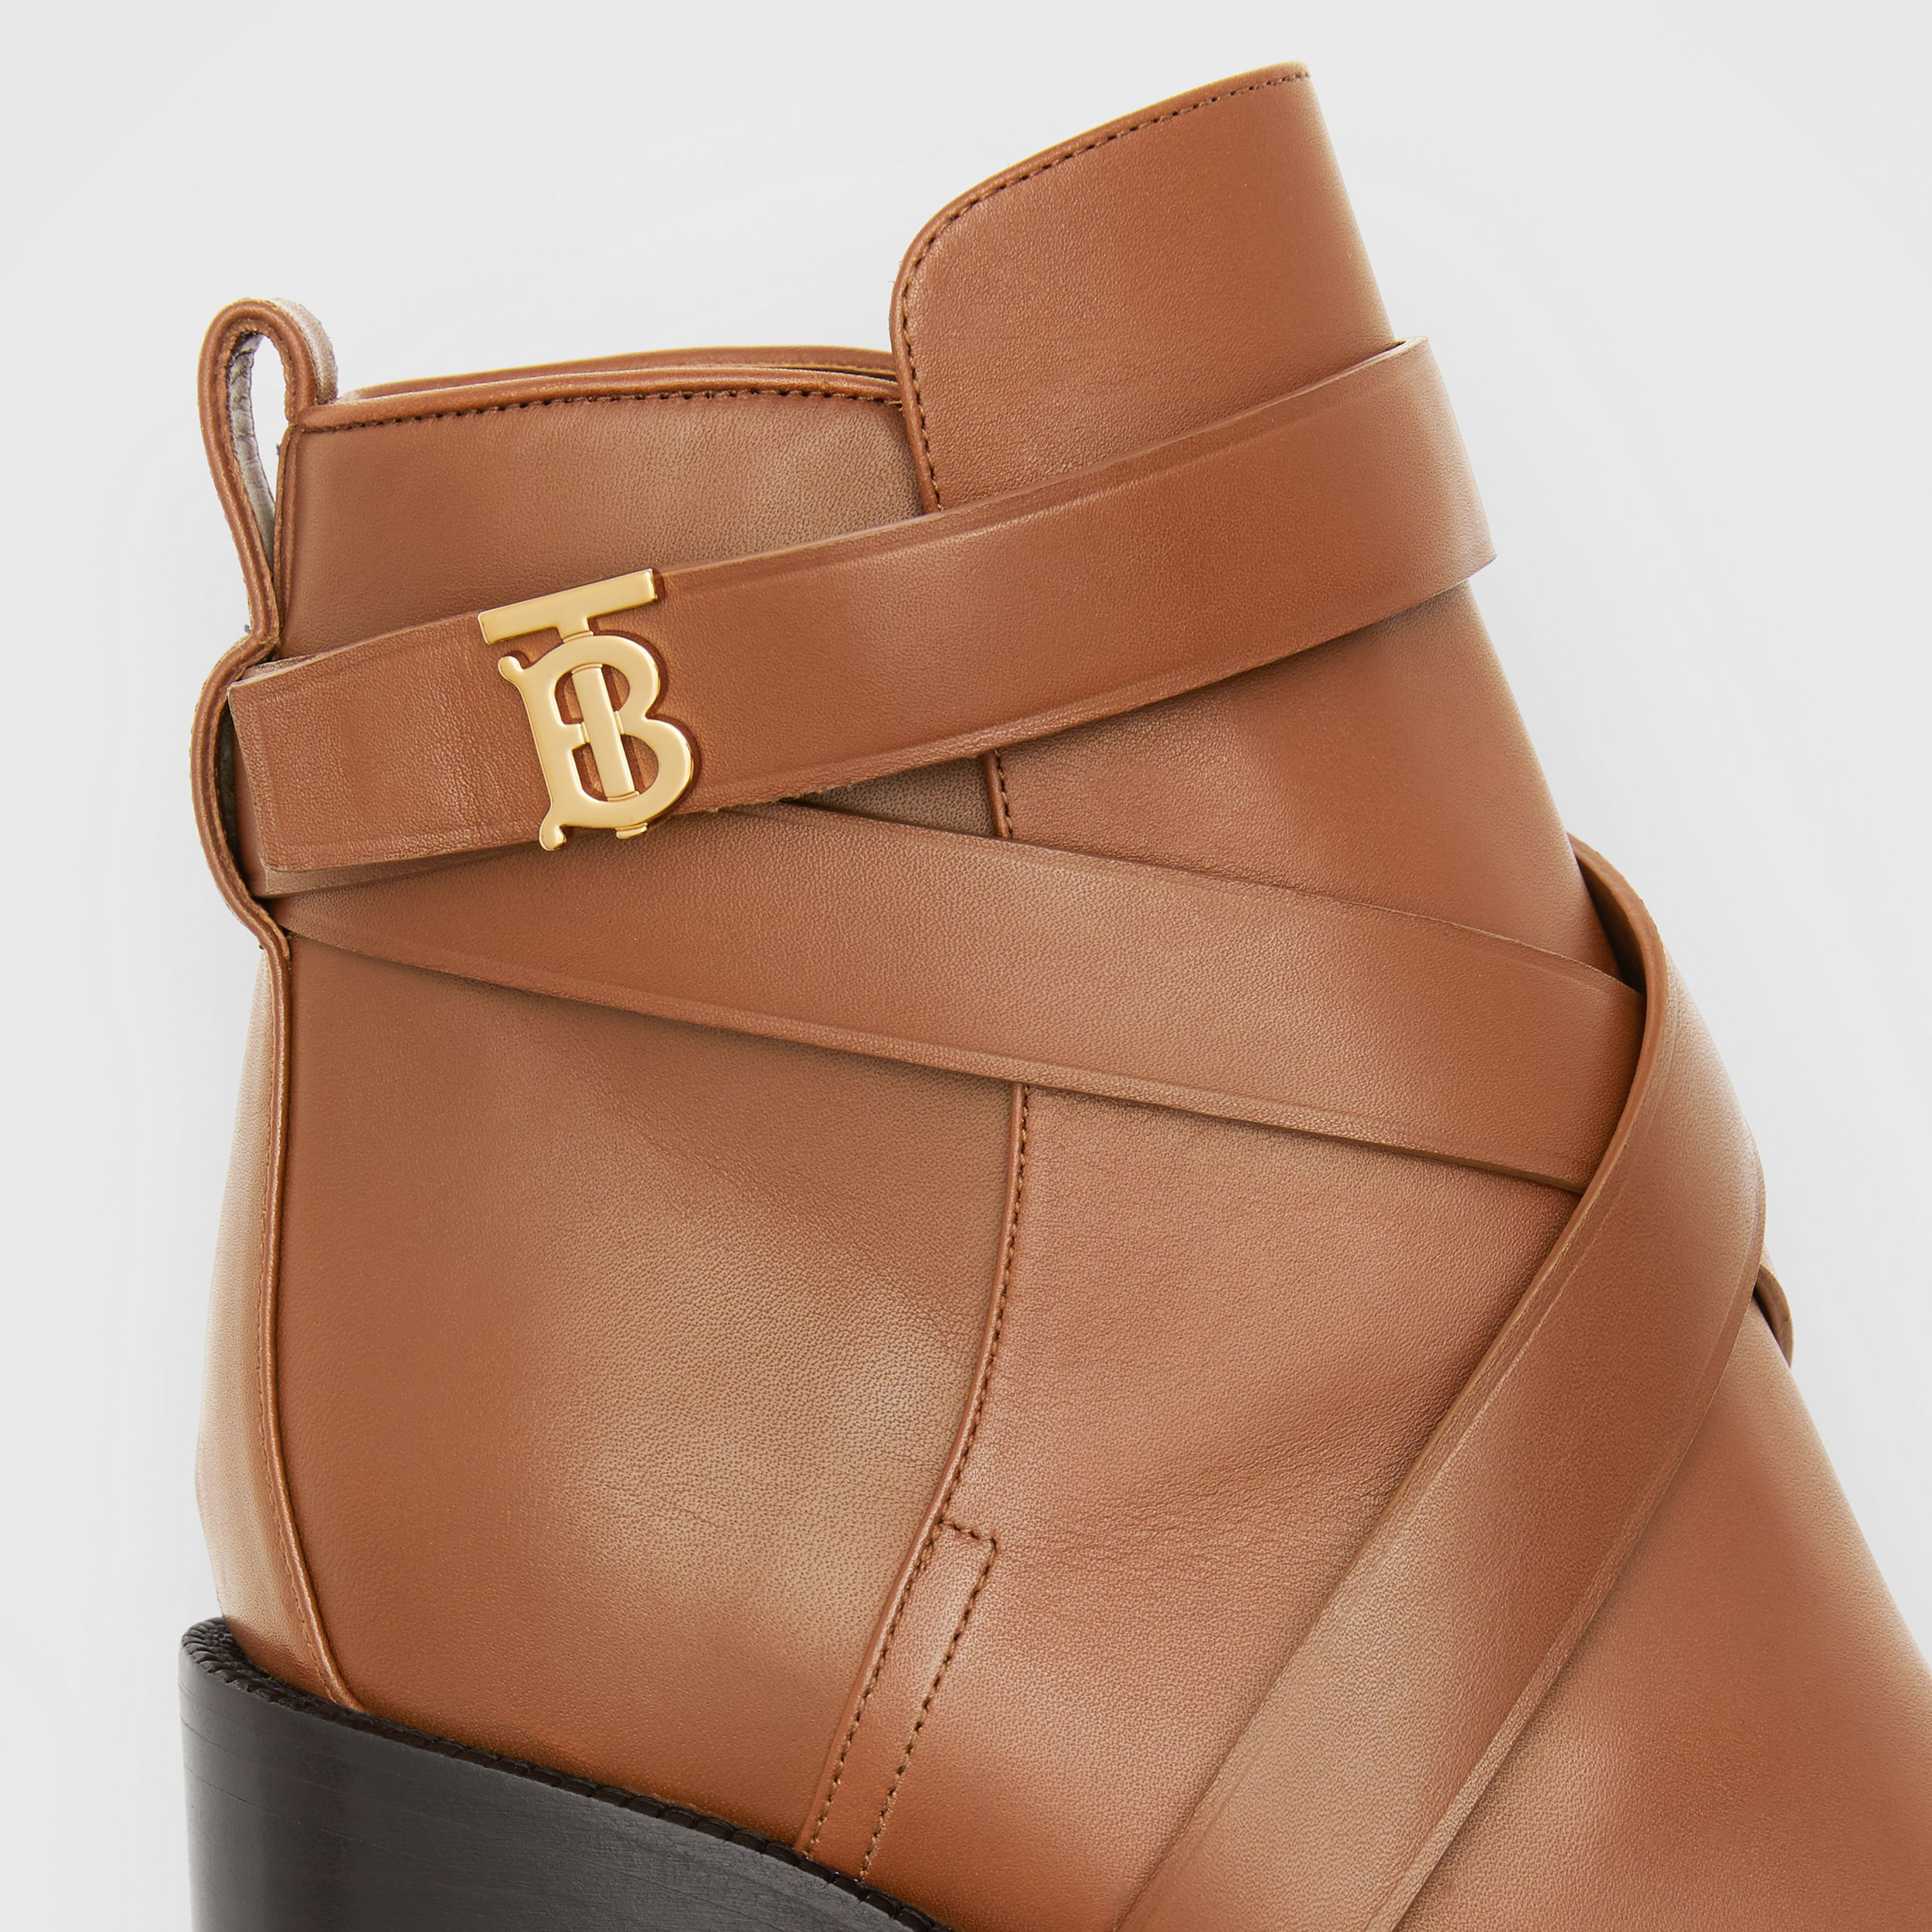 Monogram Motif Leather Ankle Boots in Tan - Women | Burberry United States - 2